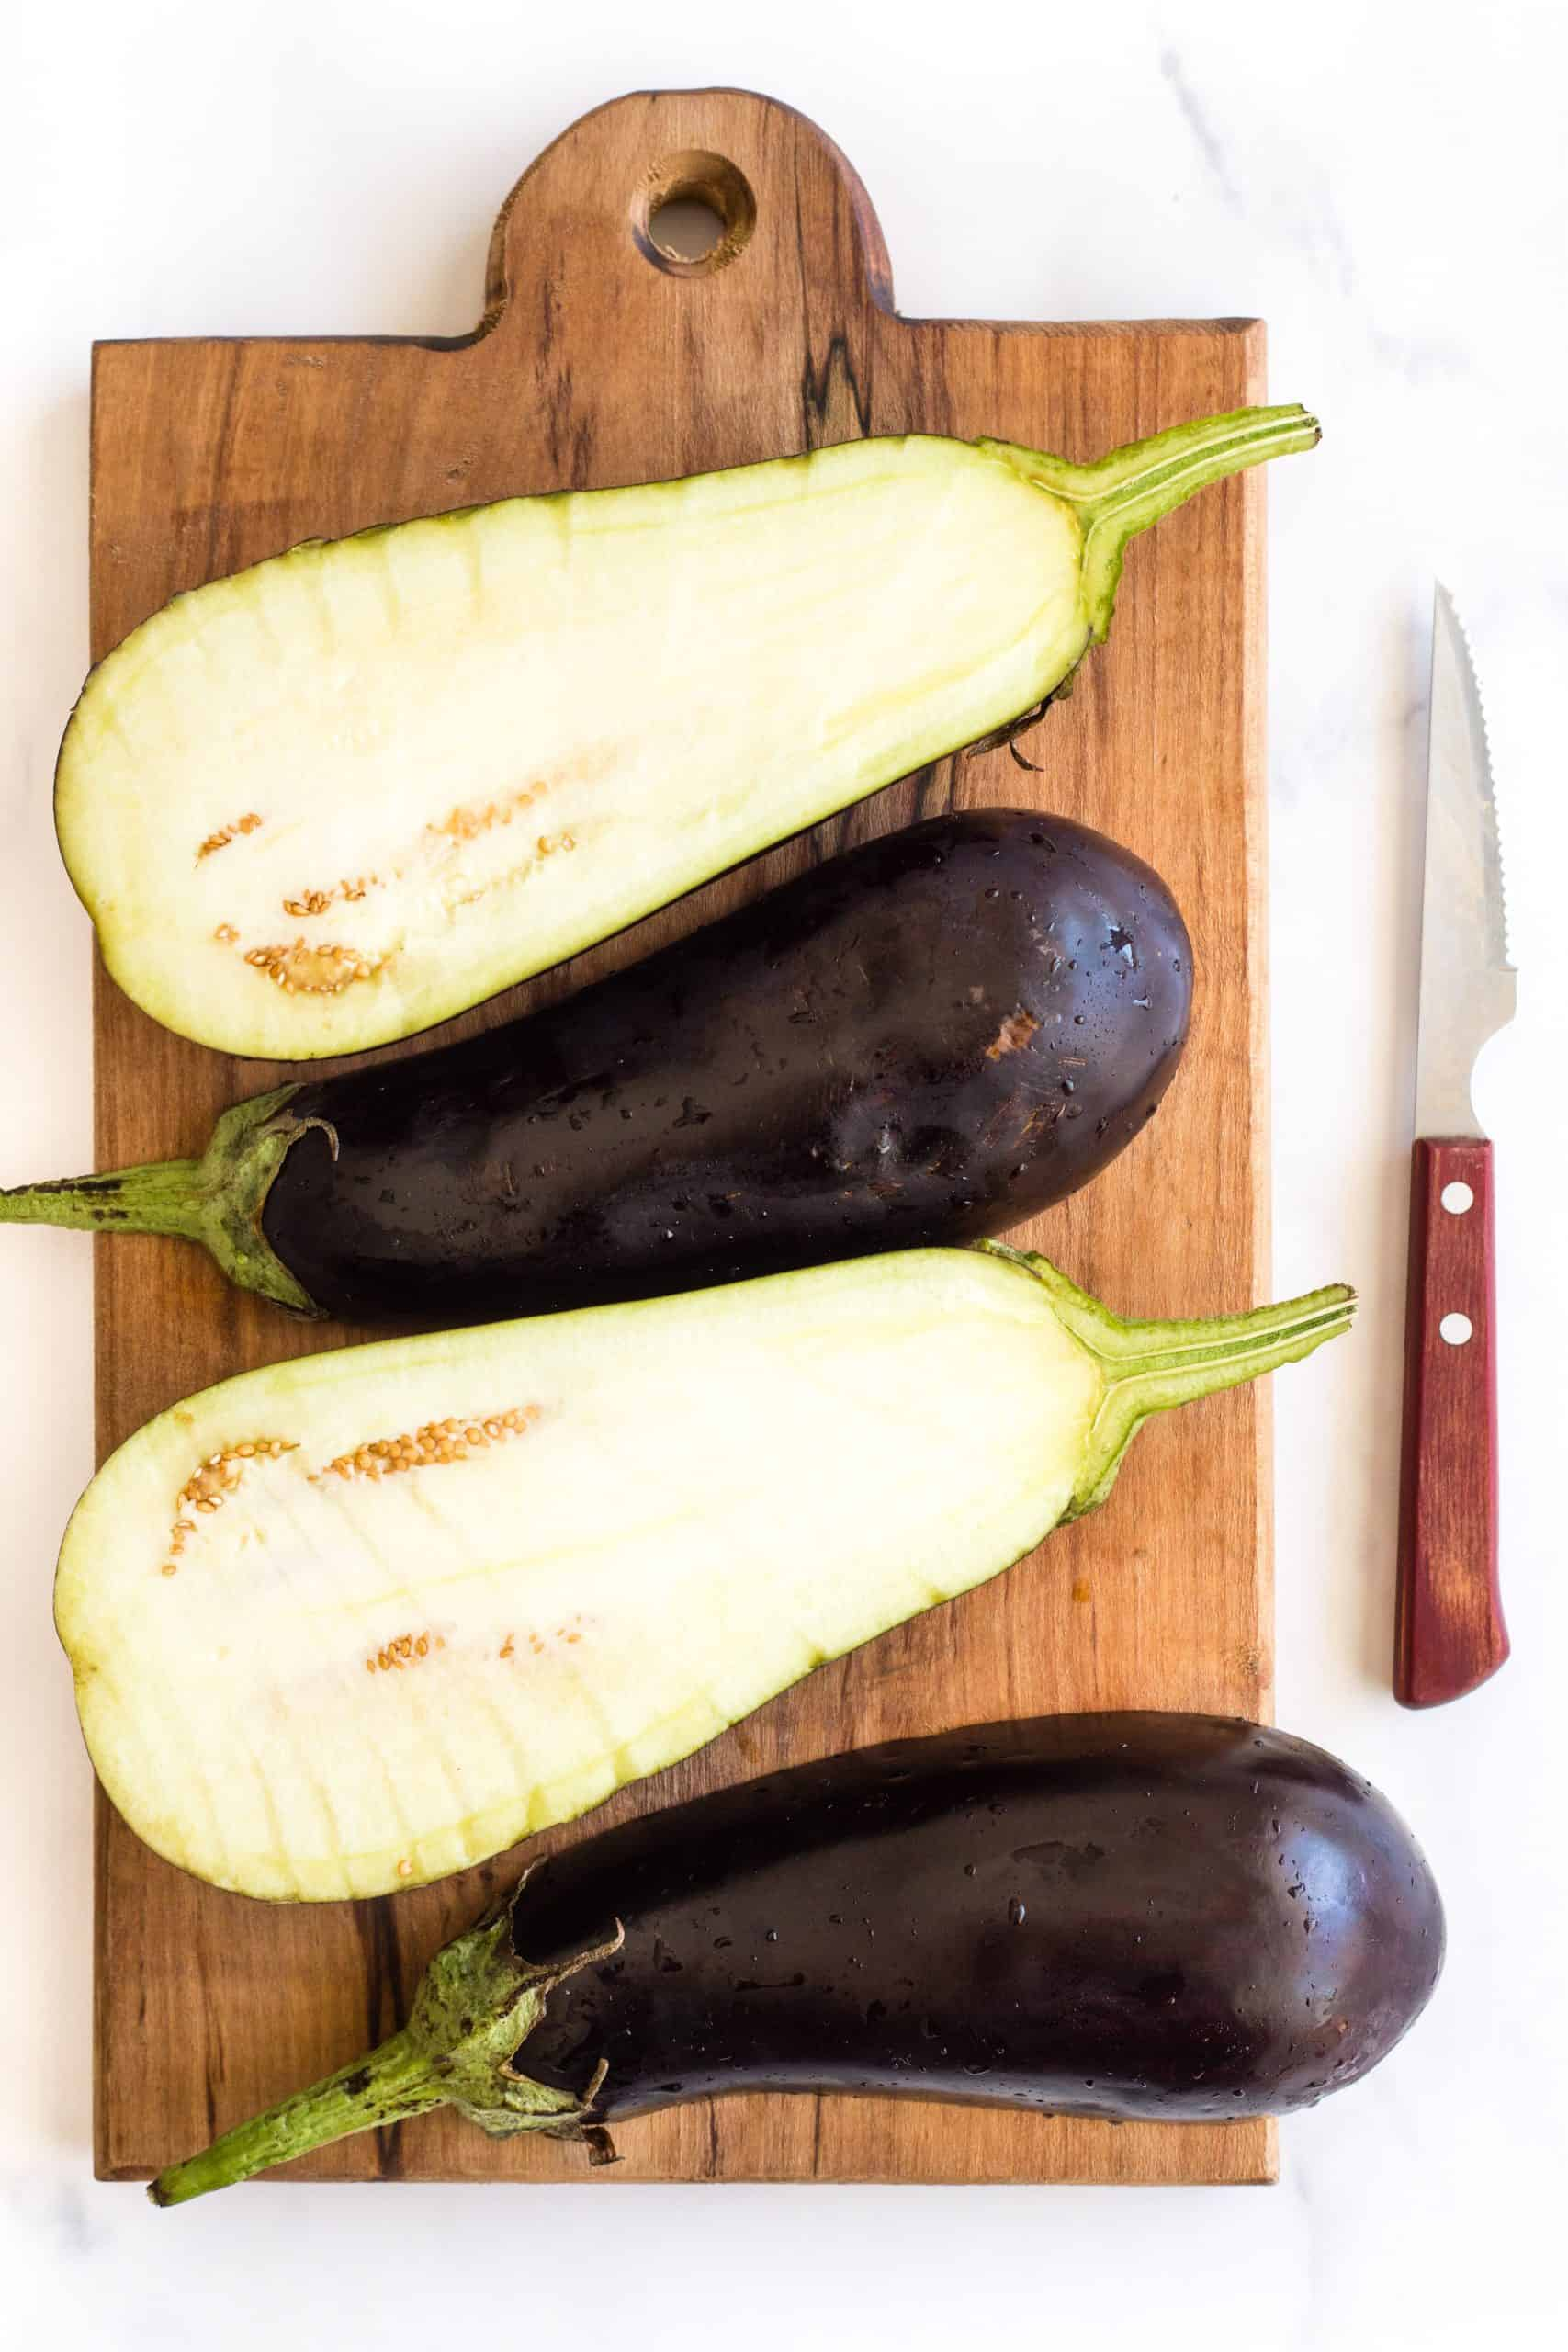 Eggplant halves on a wooden board.